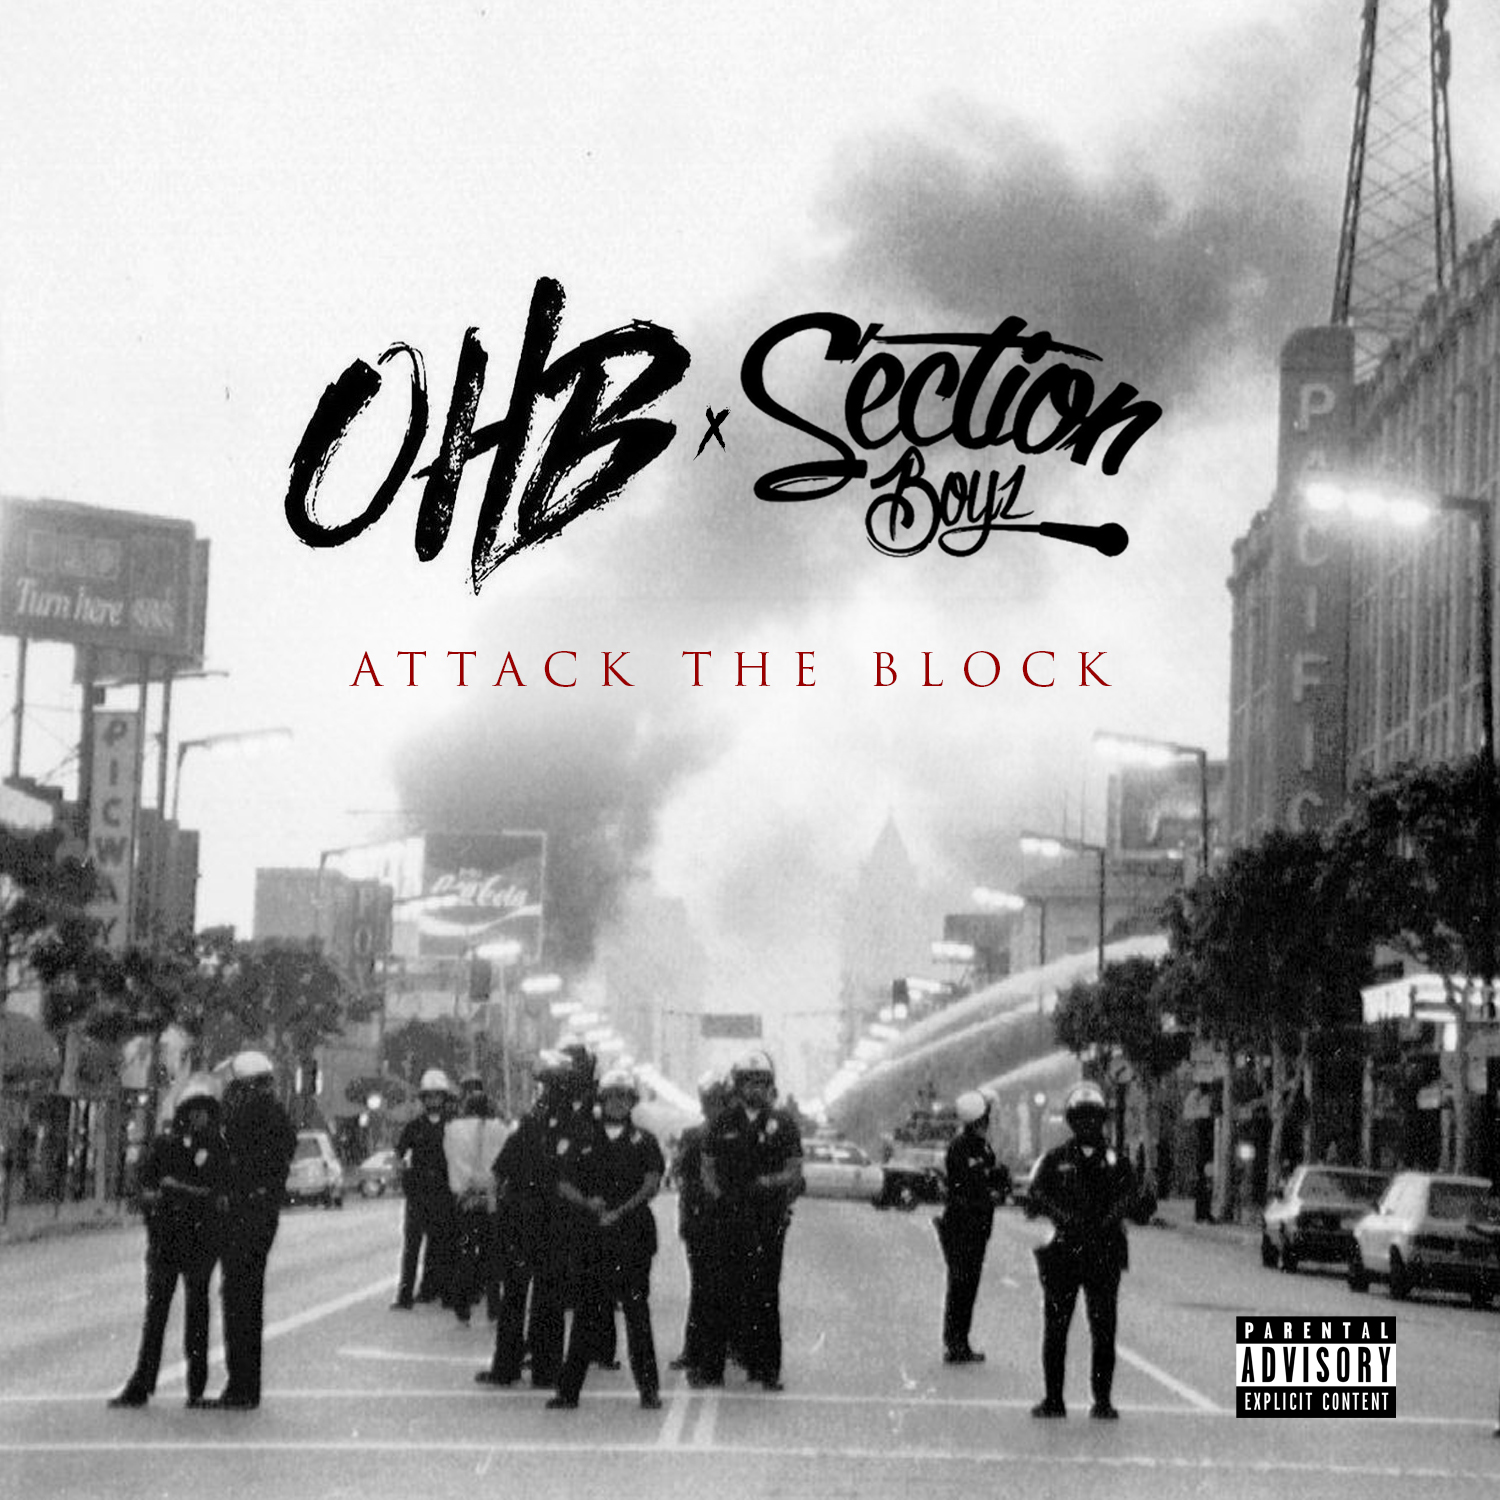 ohb-sectionboyz-attacktheblock